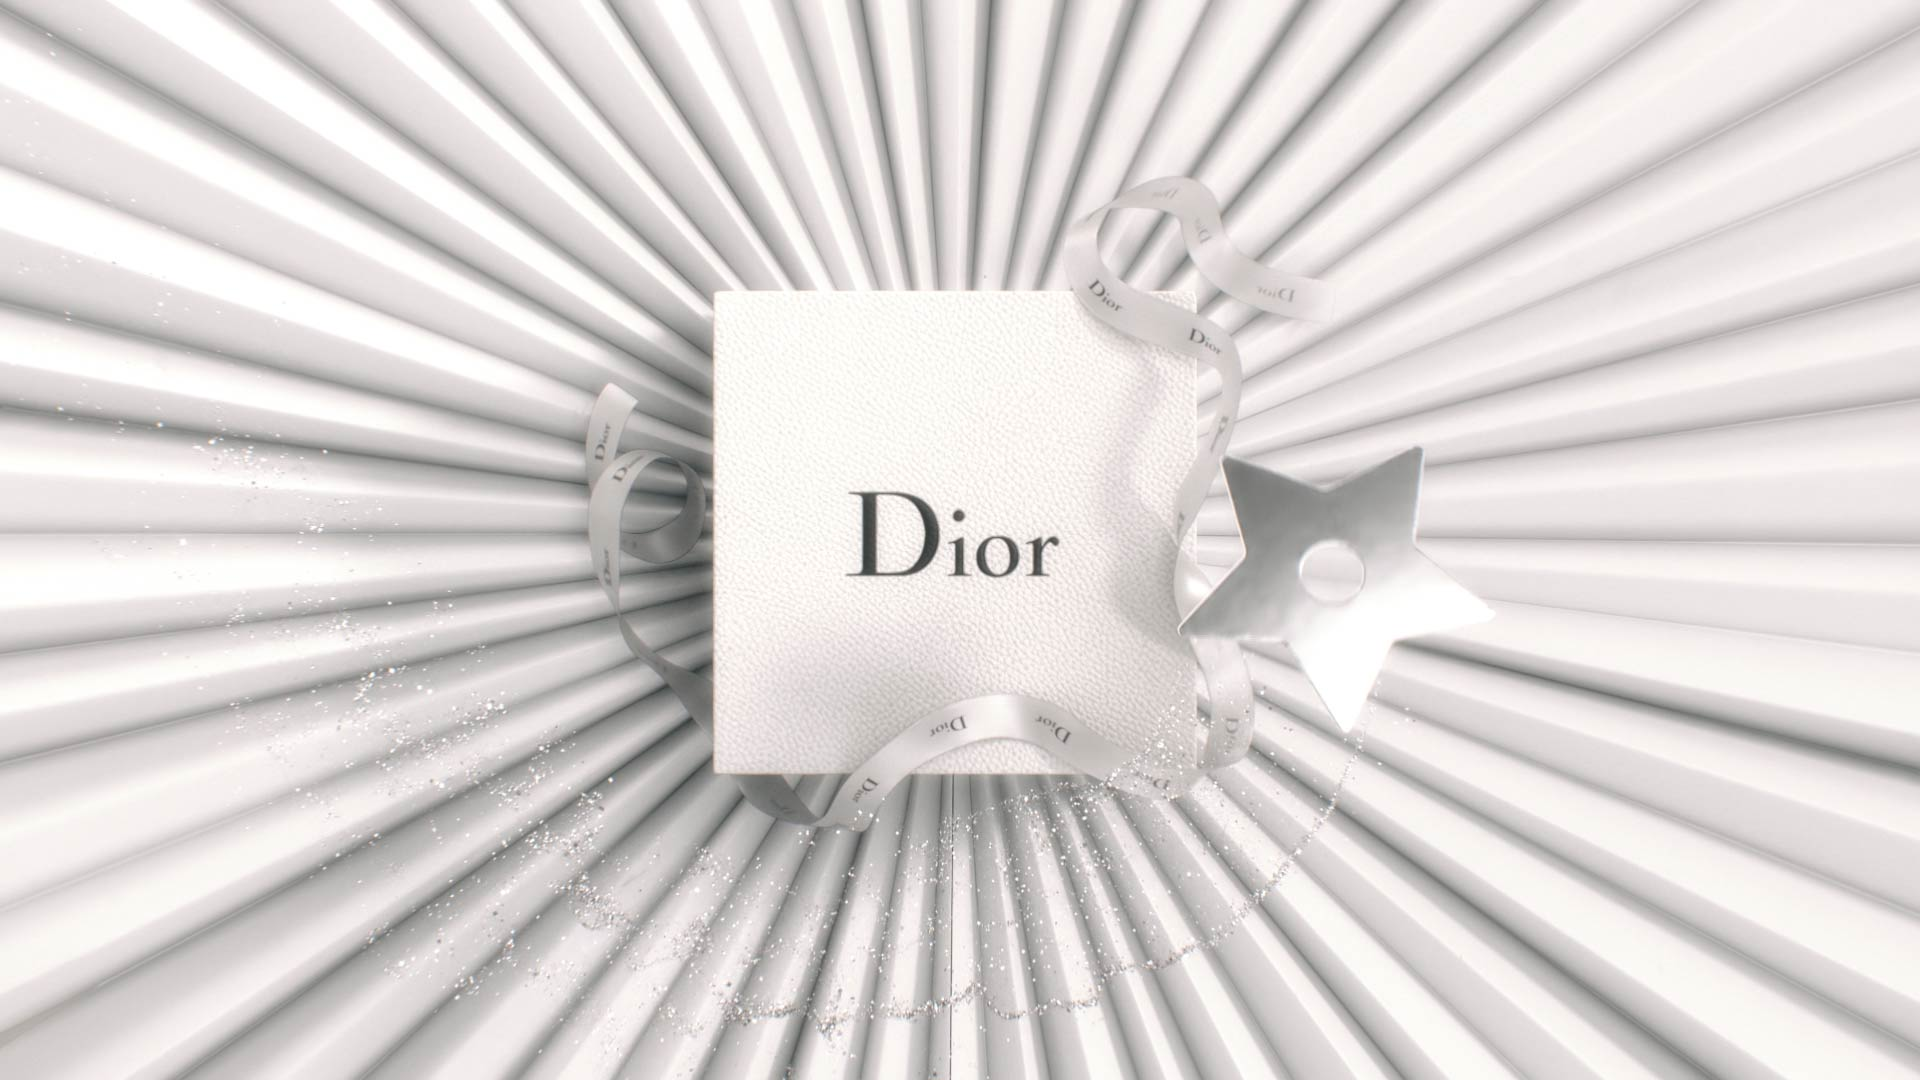 3D Dior gift box on top of paper art